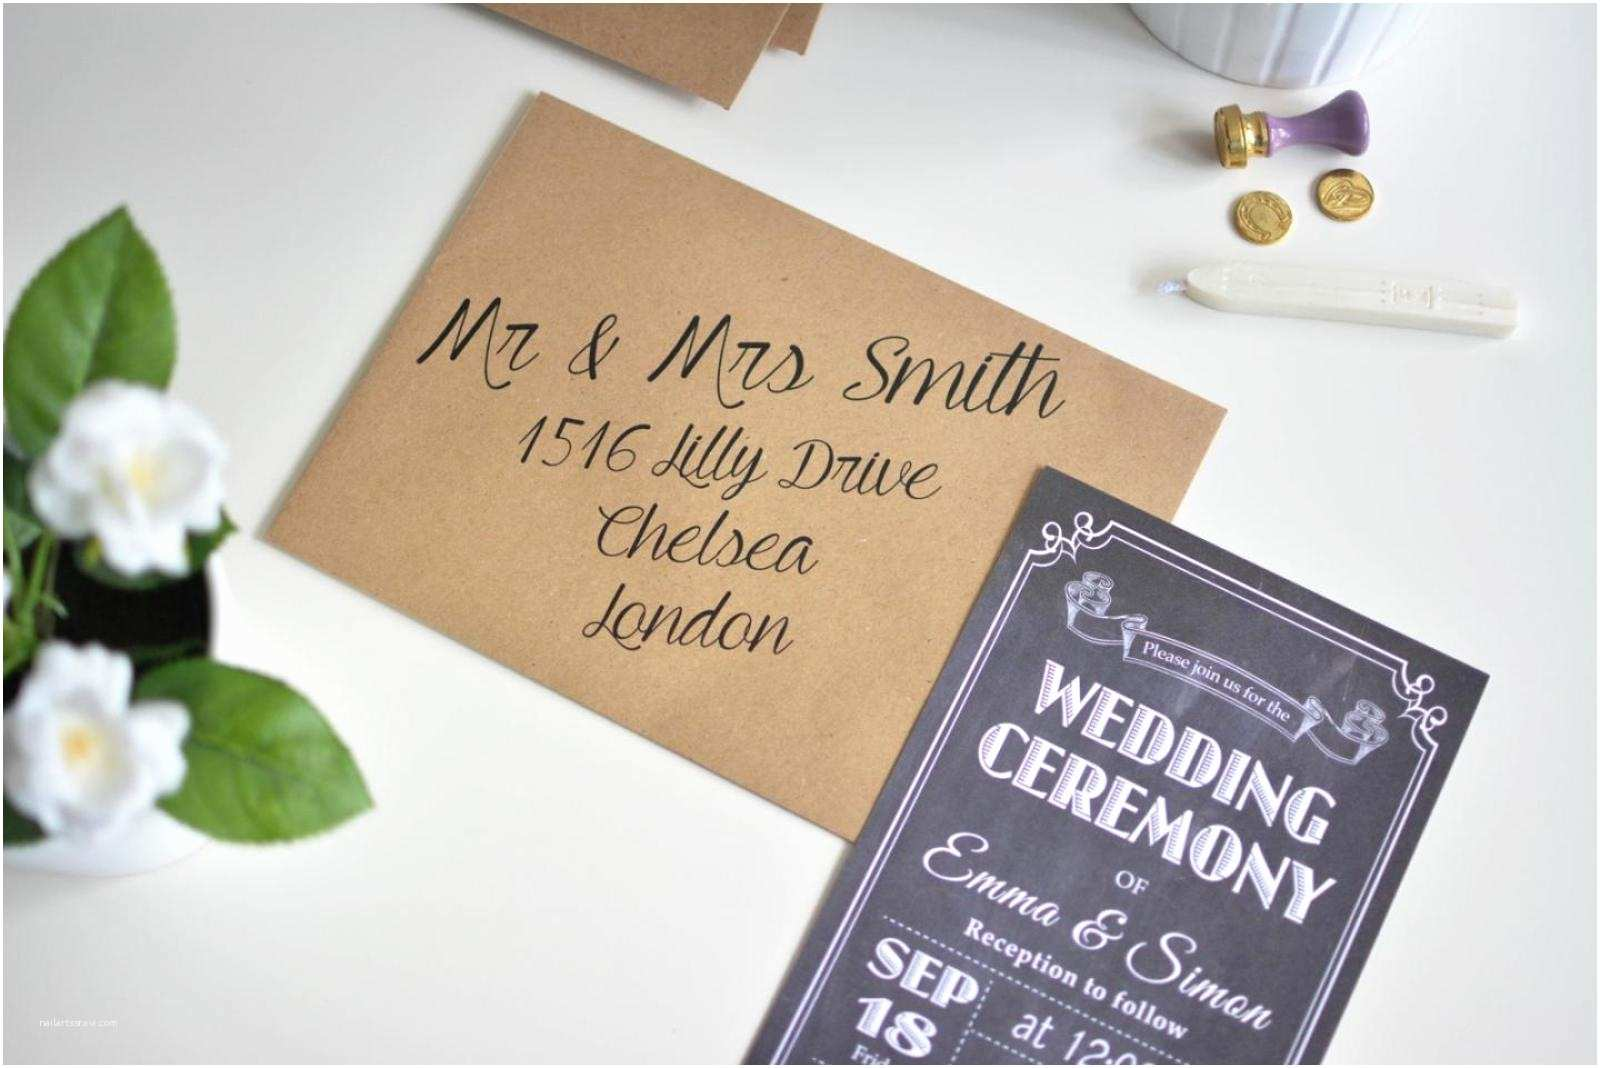 Seal and Send Wedding Invitations Vistaprint How to Make Affordable Chalkboard Wedding Invitations